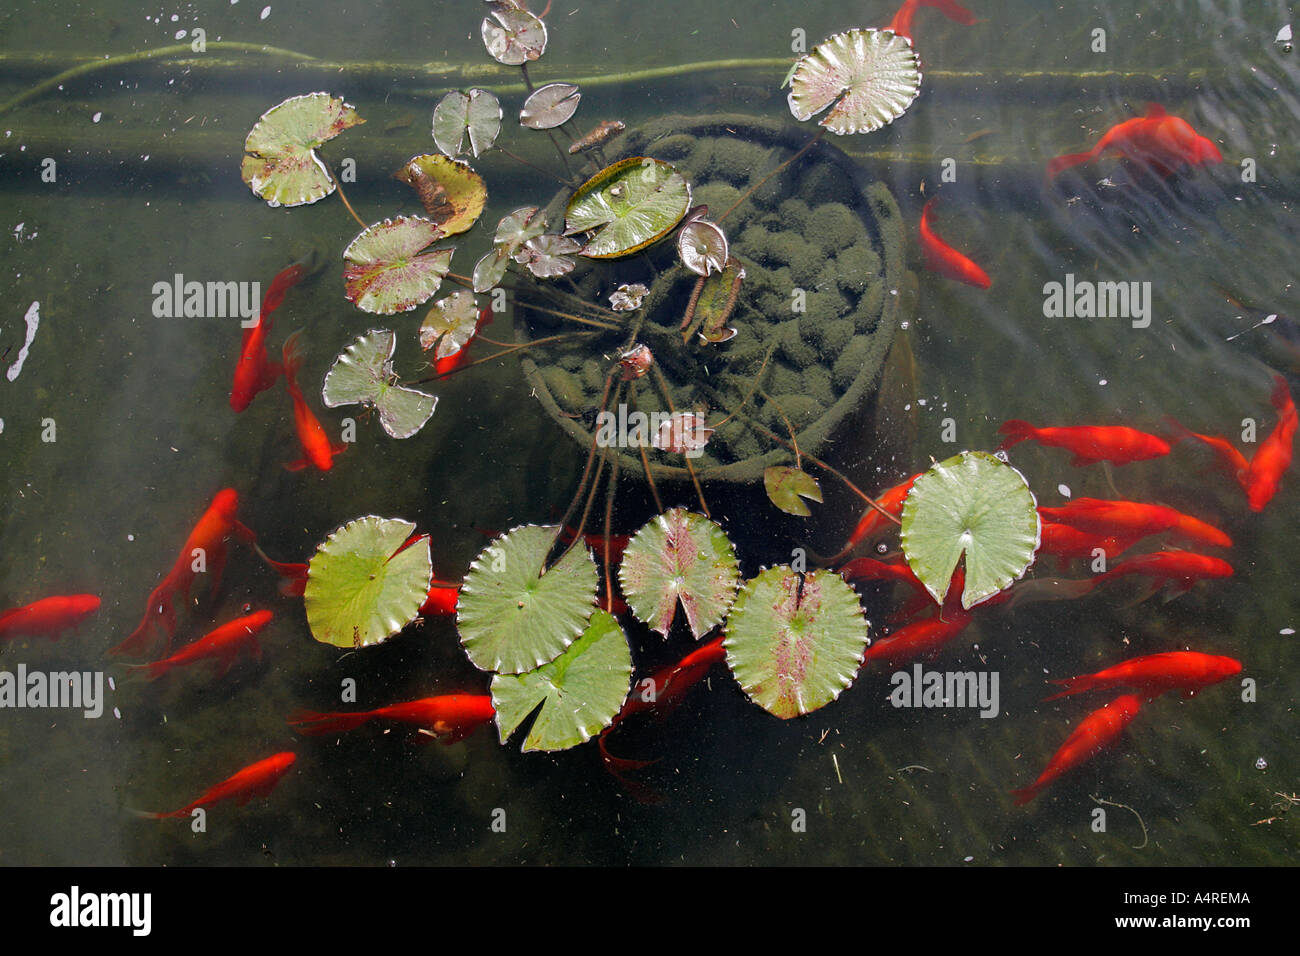 Freshwater fish tank yellow water - Stock Photo Lily Flower In Little Pond Leaves Golden Fish Aquarium Tank Animal Fishes Freshwater Aquaria Tropical Goldfish Fancy Red Yellow